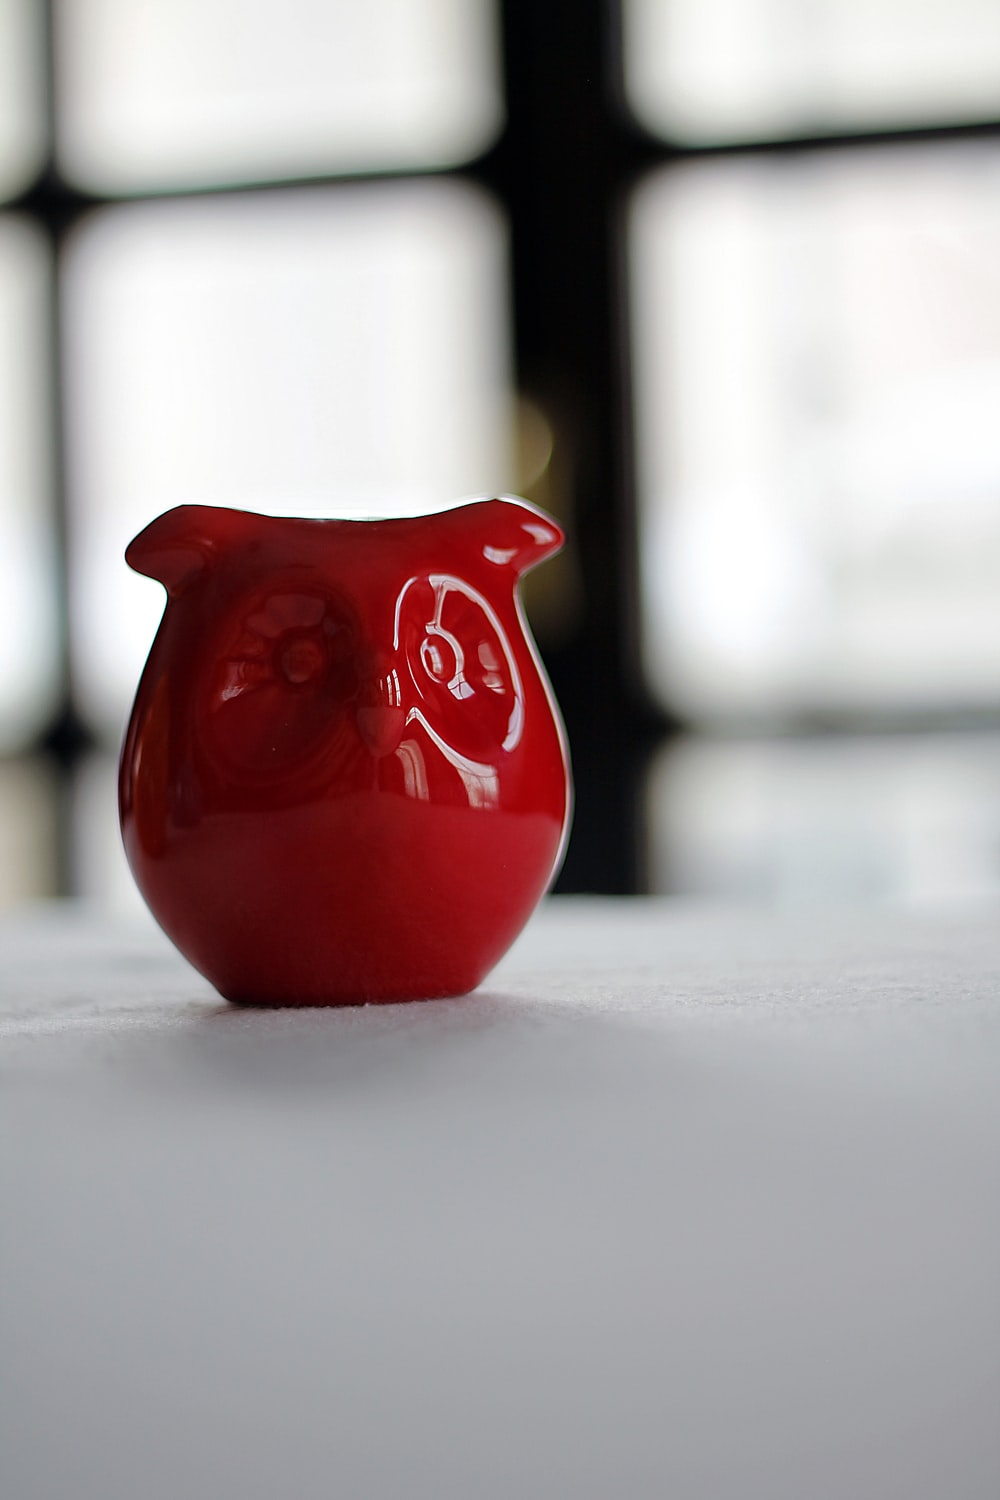 red owl figurine on white surface